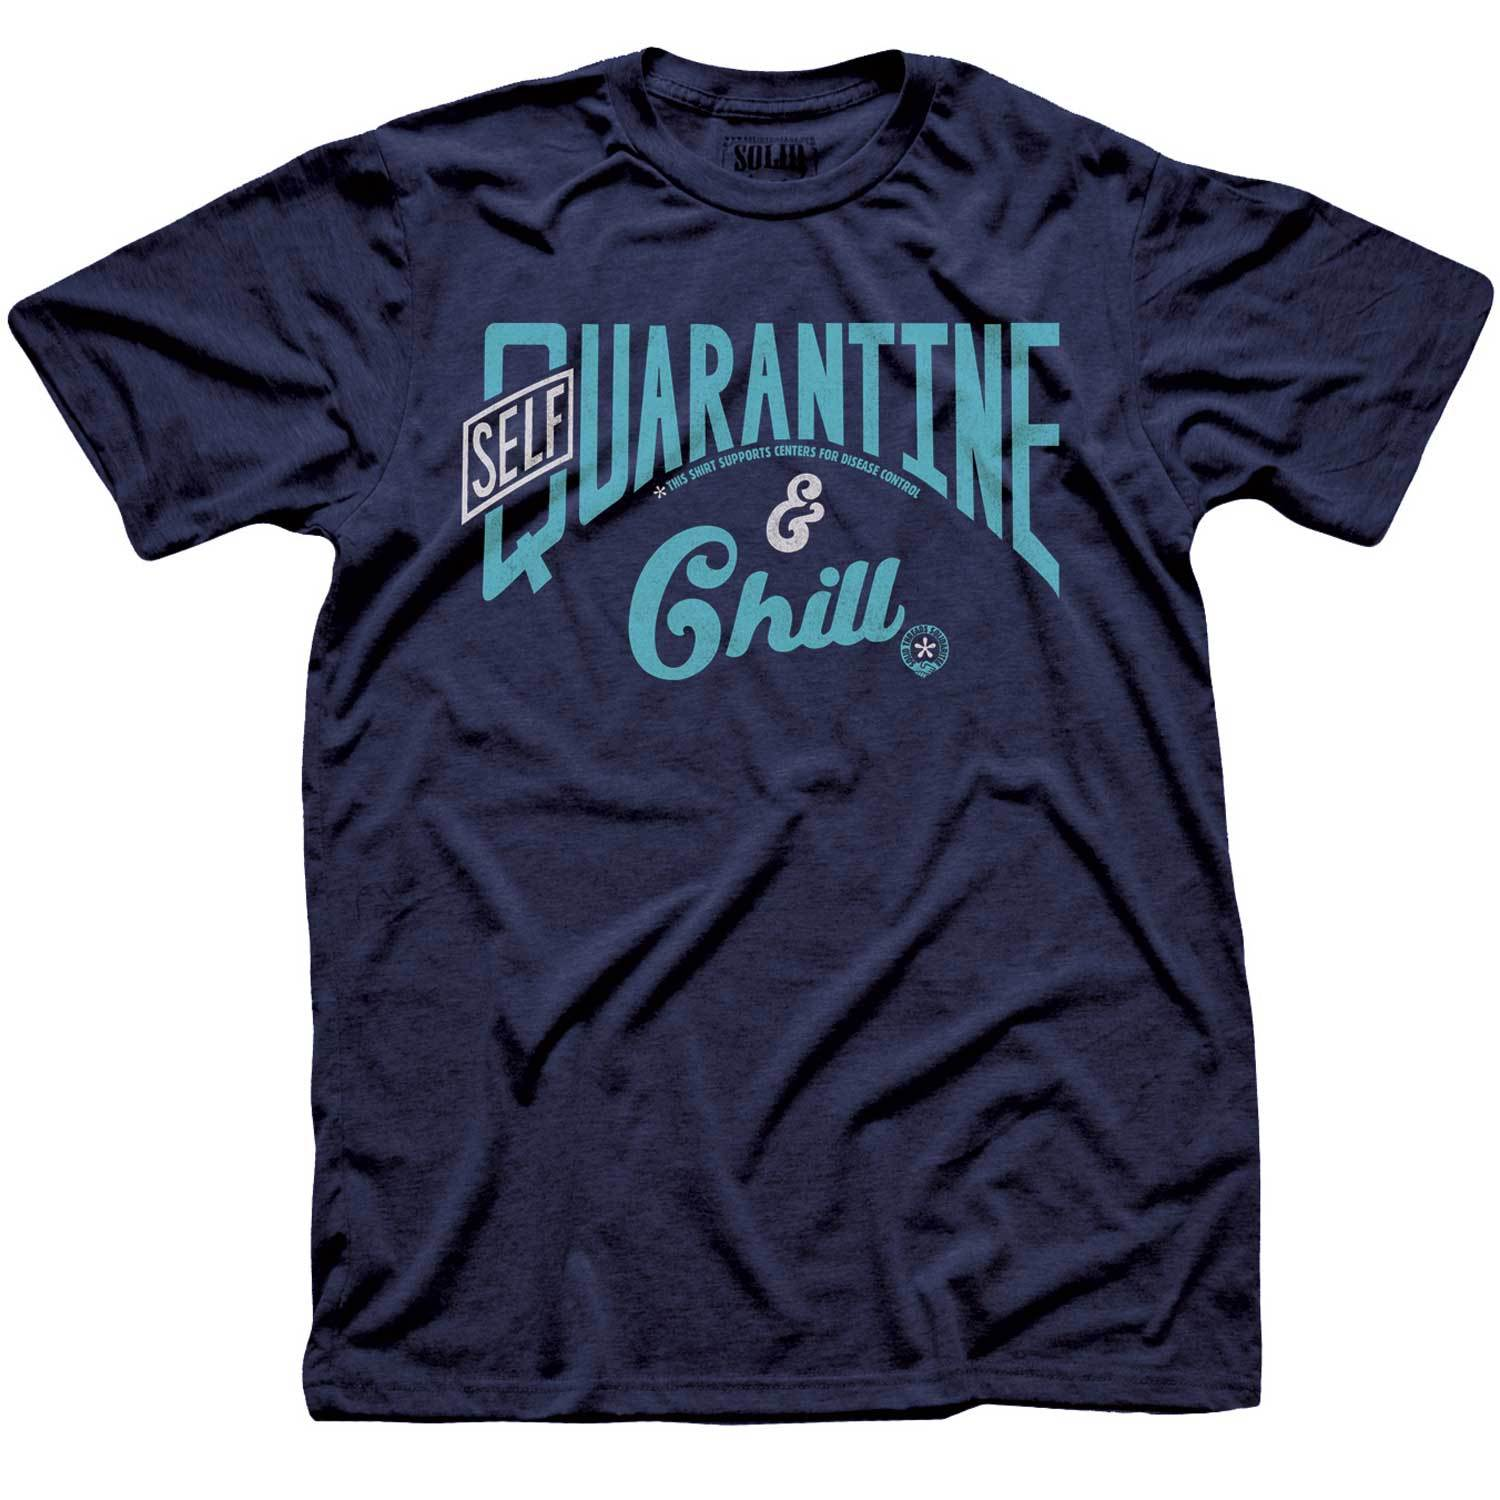 Self Quarantine & Chill Vintage Inspired Tee-shirt with Retro Coronavirus Relief Charity Graphic | Solid Threads